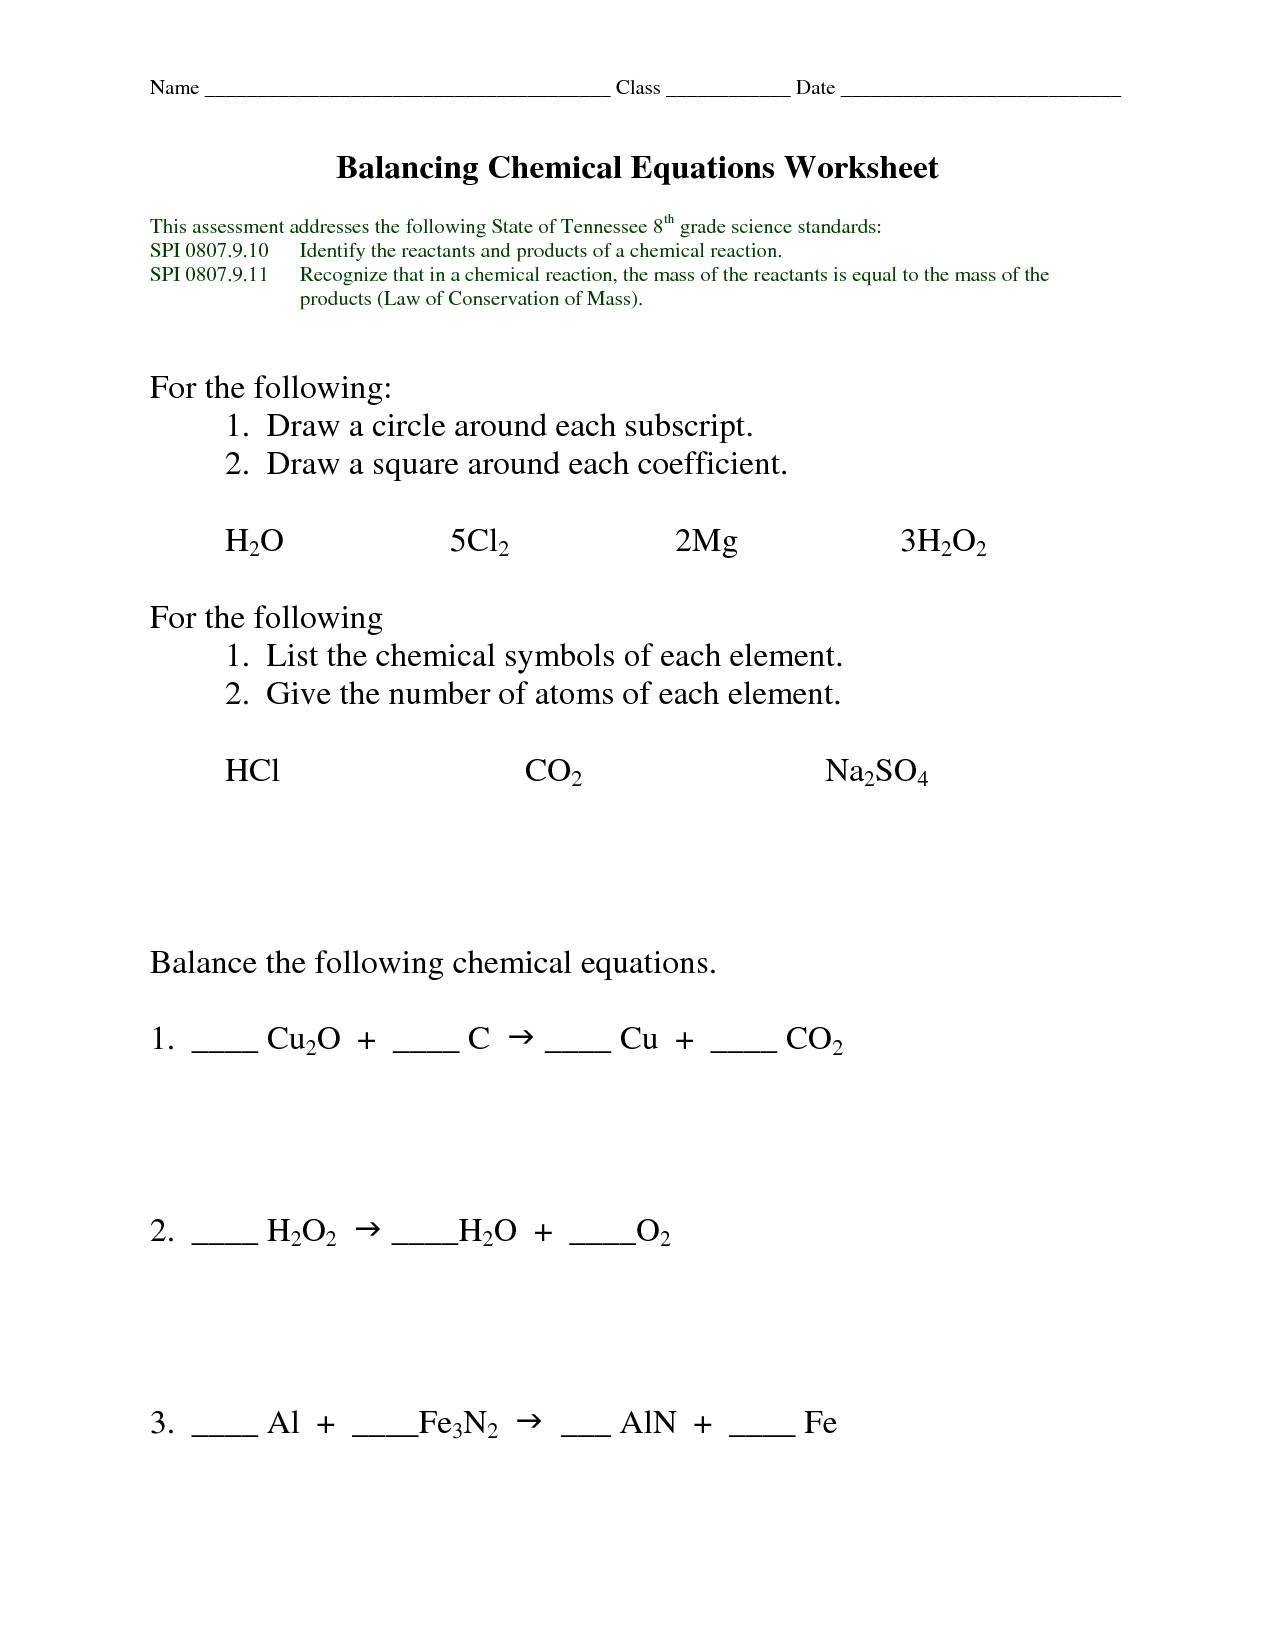 14 Best Images Of Balancing Chemical Equations Worksheet